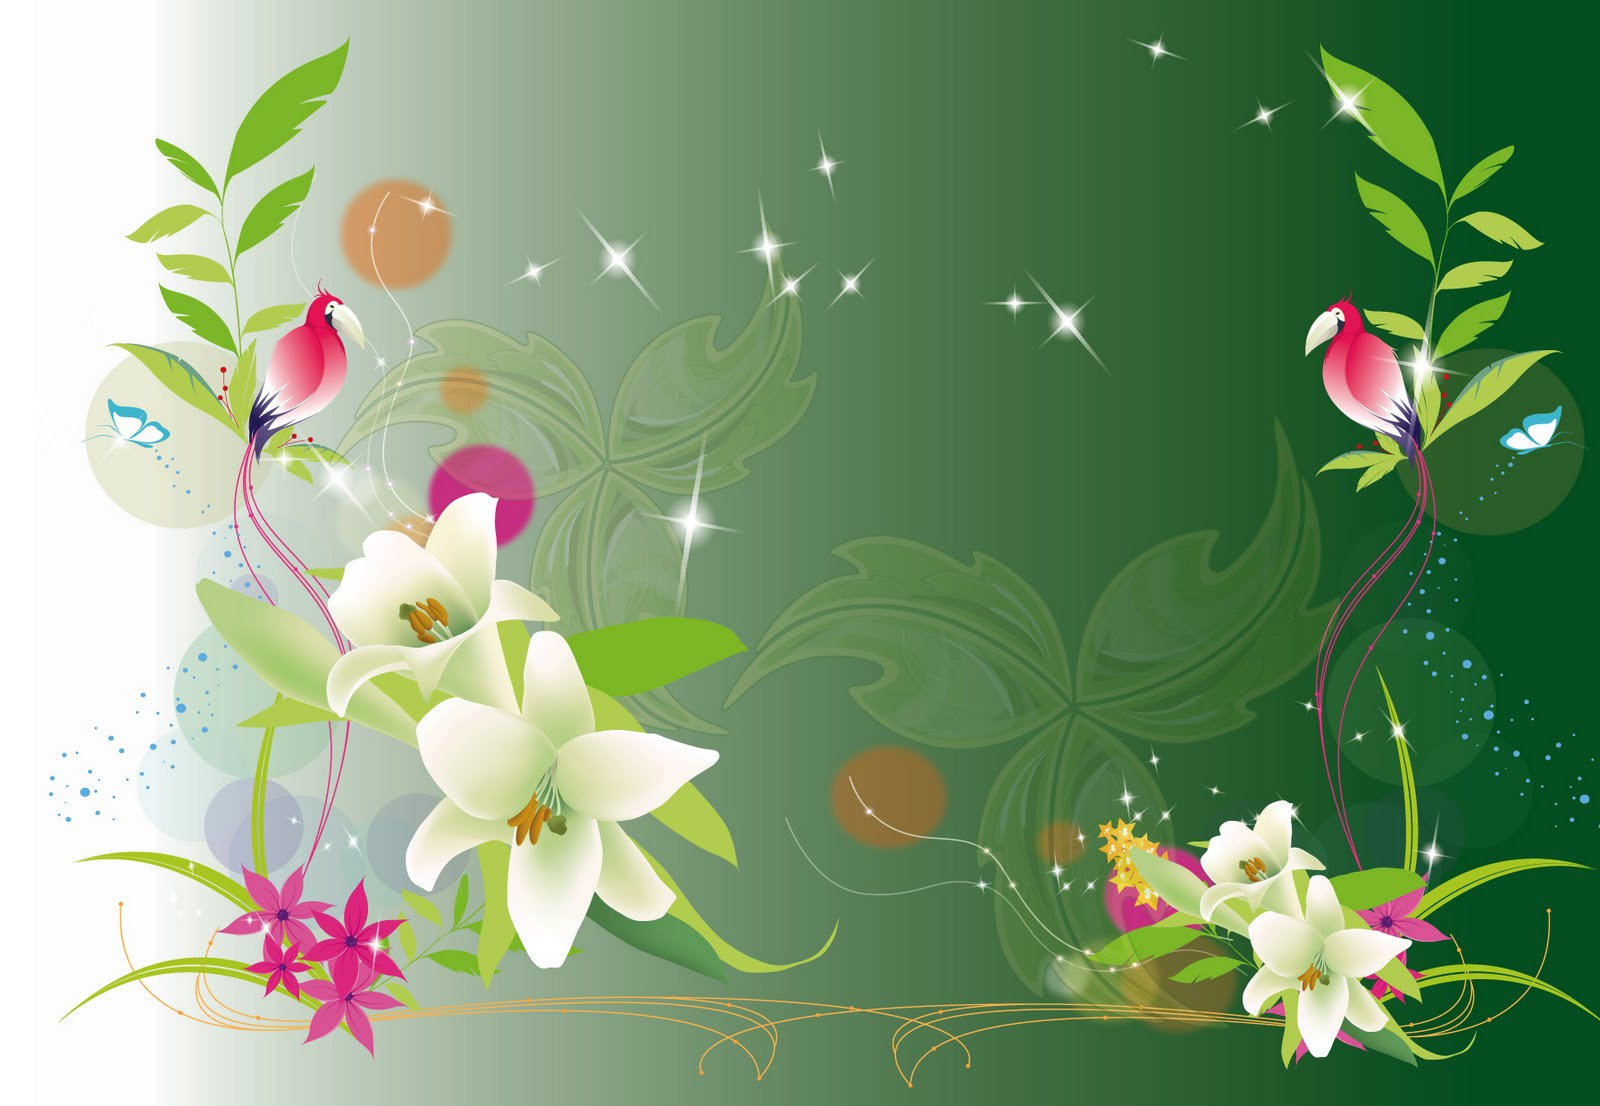 Little Girl With Flowers Hd Wallpaper Birthday Cool Flower Designs Picture Wallpaper 1600 X